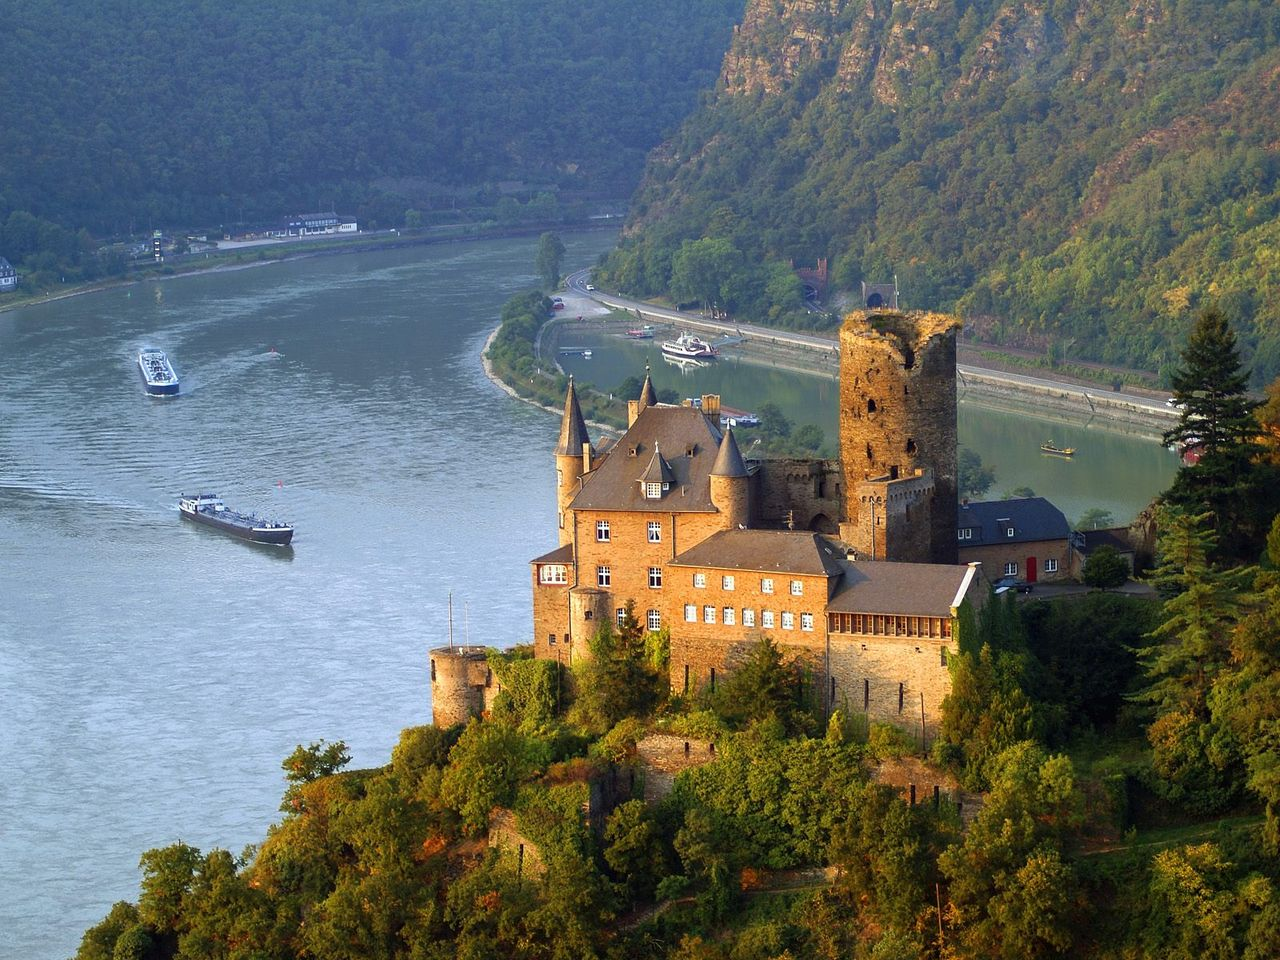 rhine chatrooms Looking to stay at a achat in rhine - neckar, baden-wuerttemberg find cheap hotel deals for a wide range of achat hotel rooms & suites in rhine - neckar, baden-wuerttemberg.